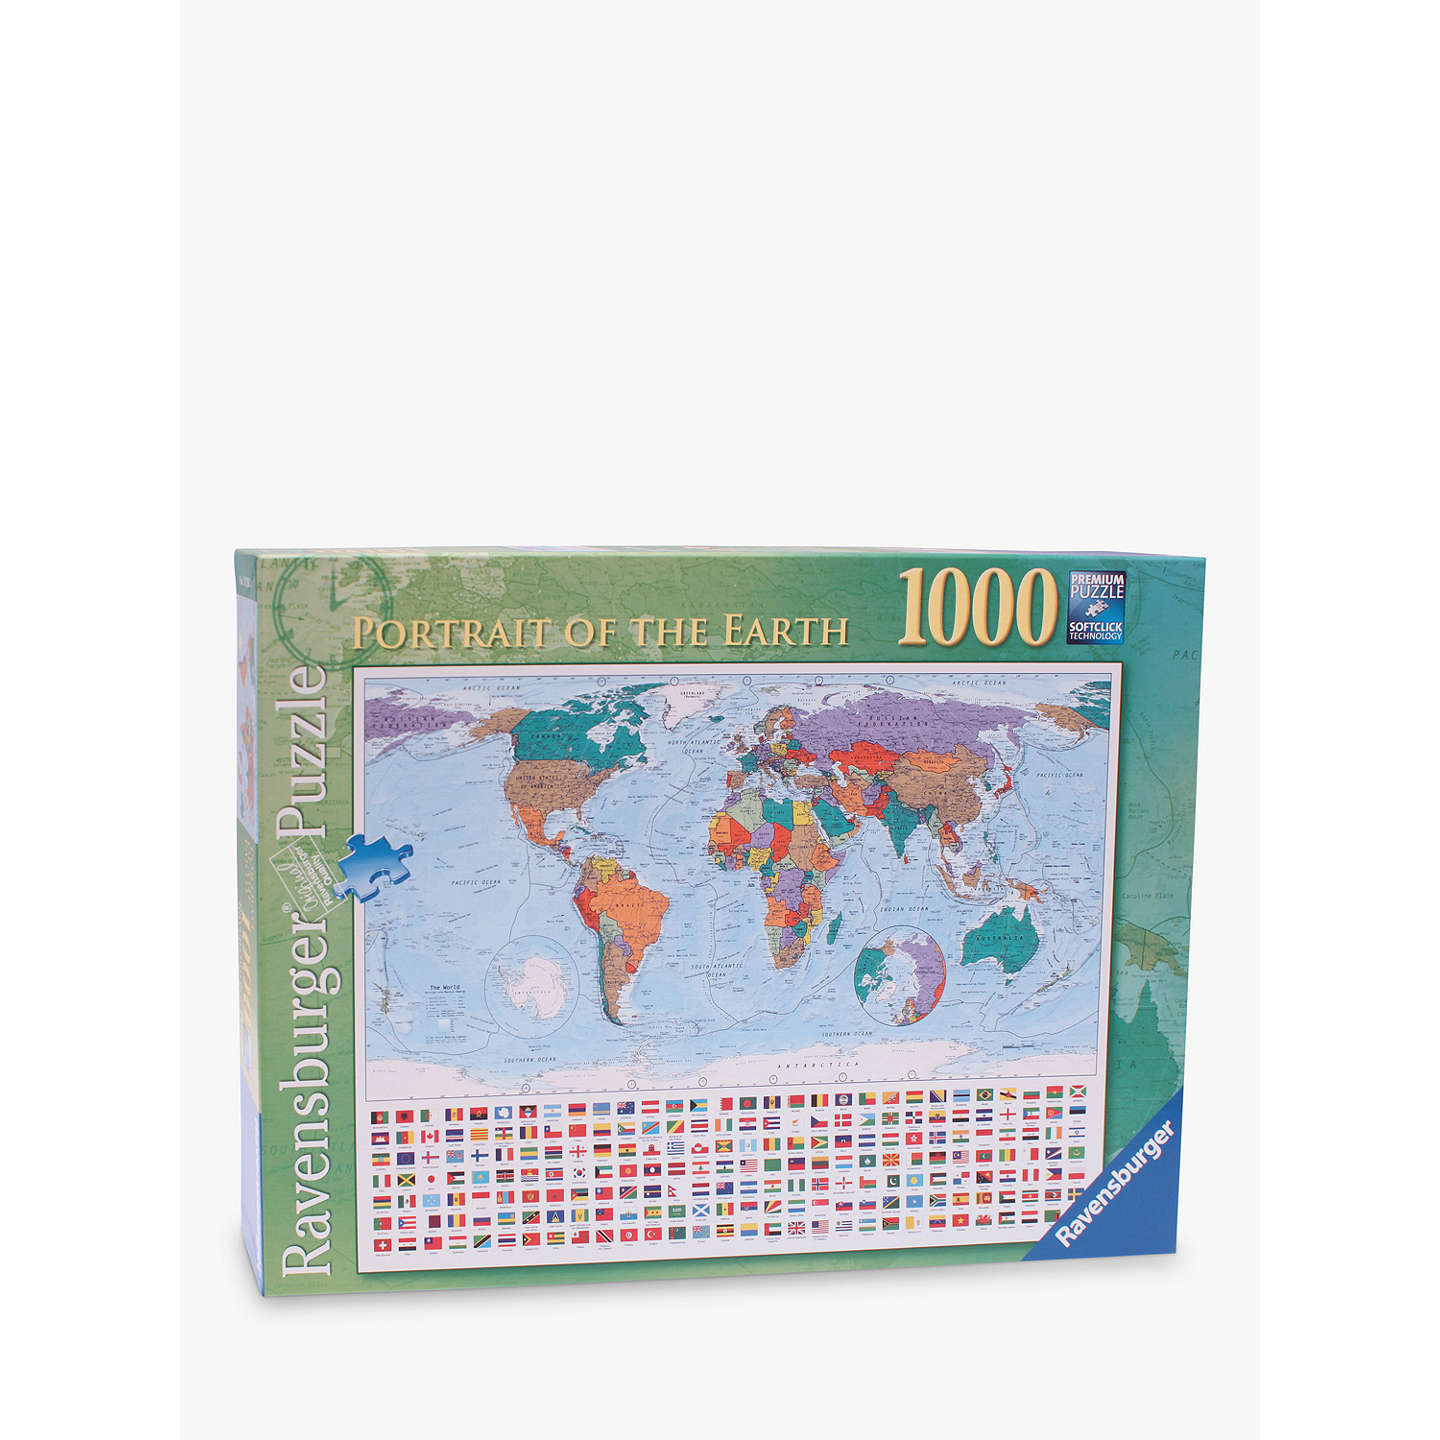 Ravensburger portrait of the earth 1000 piece jigsaw puzzle at buyravensburger portrait of the earth 1000 piece jigsaw puzzle online at johnlewis gumiabroncs Gallery